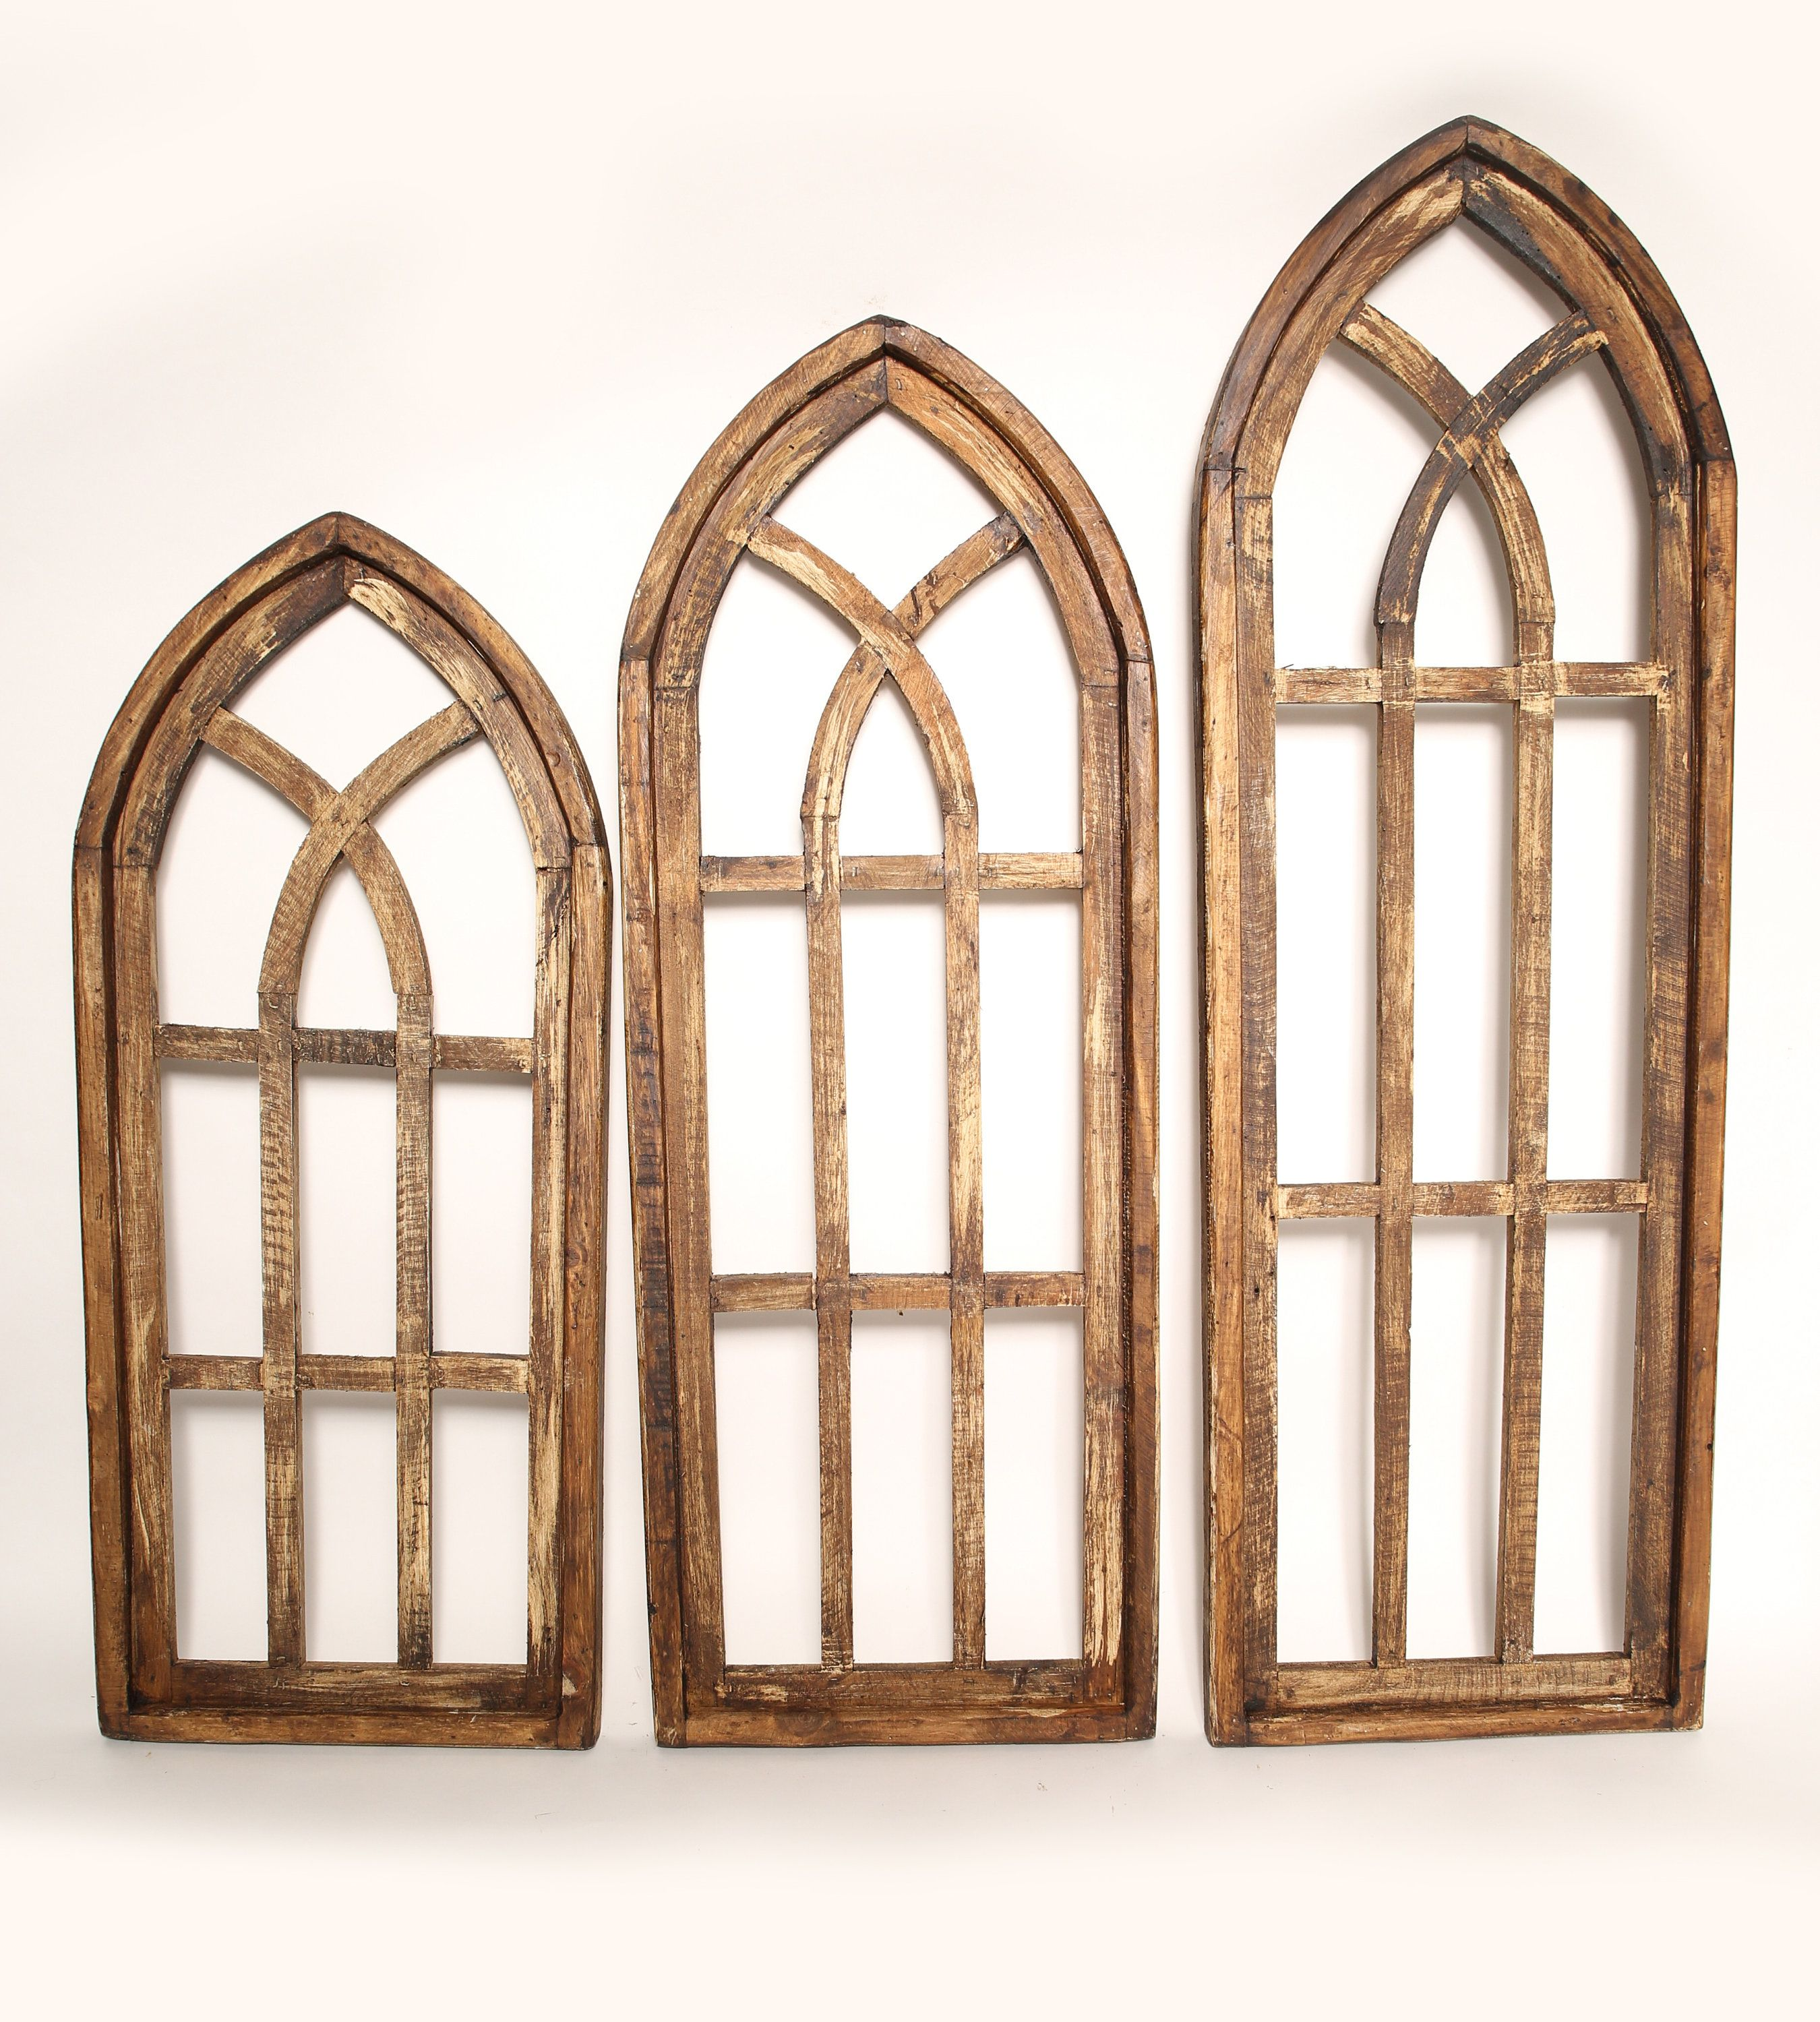 Byzantine Windows Architectural Gothic Windows Set Etsy Arched Wall Decor Window Wall Decor Medallion Wall Decor